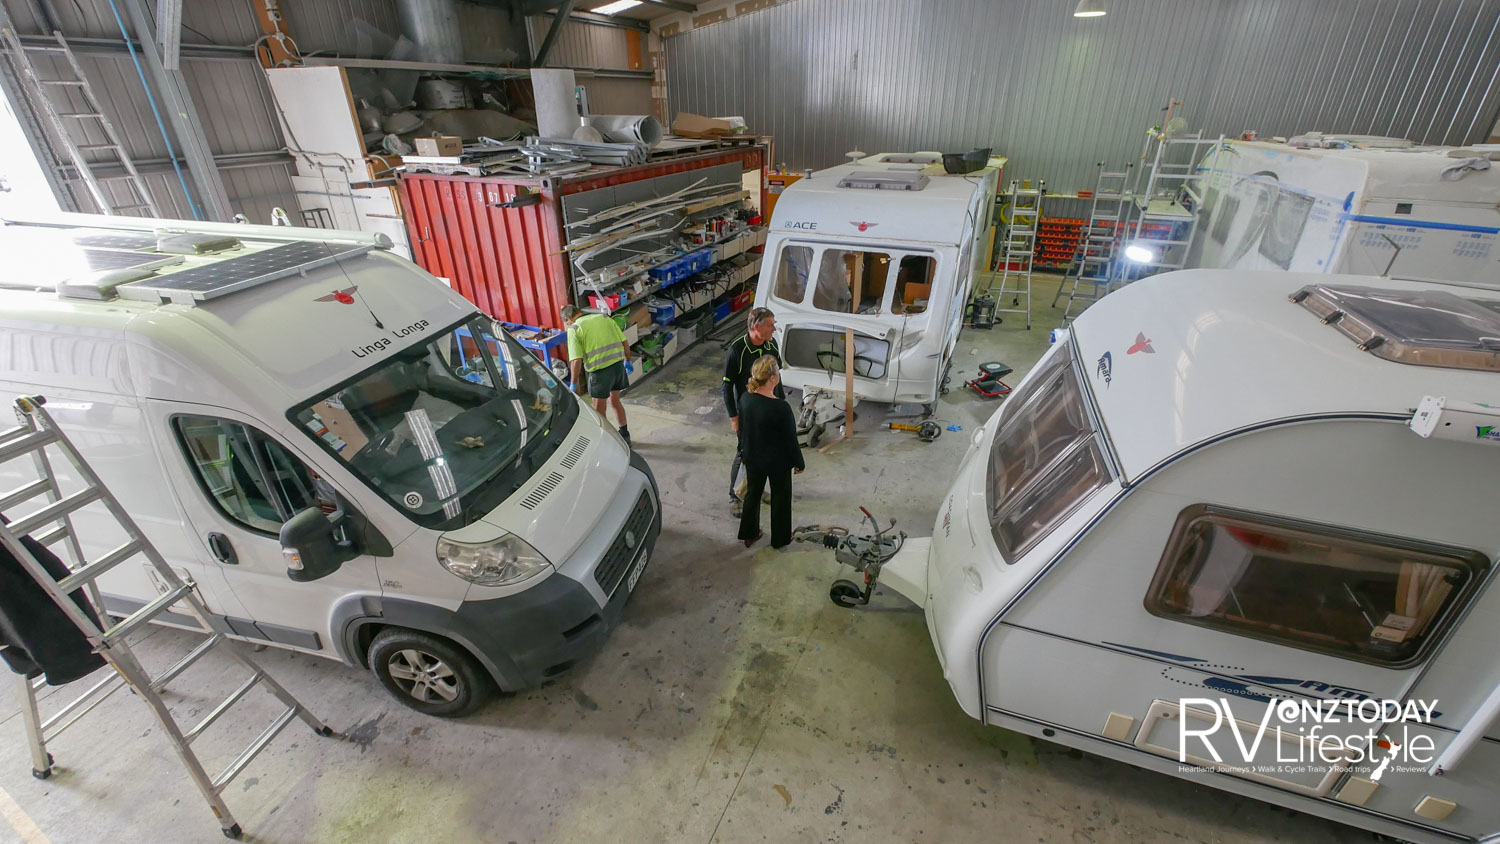 In one of the workshops, there are a couple of caravans in for repair, gas work and certification on a new imported motorhome, and upgrades lining up in a two-berth camper - it's all-go here, all the time